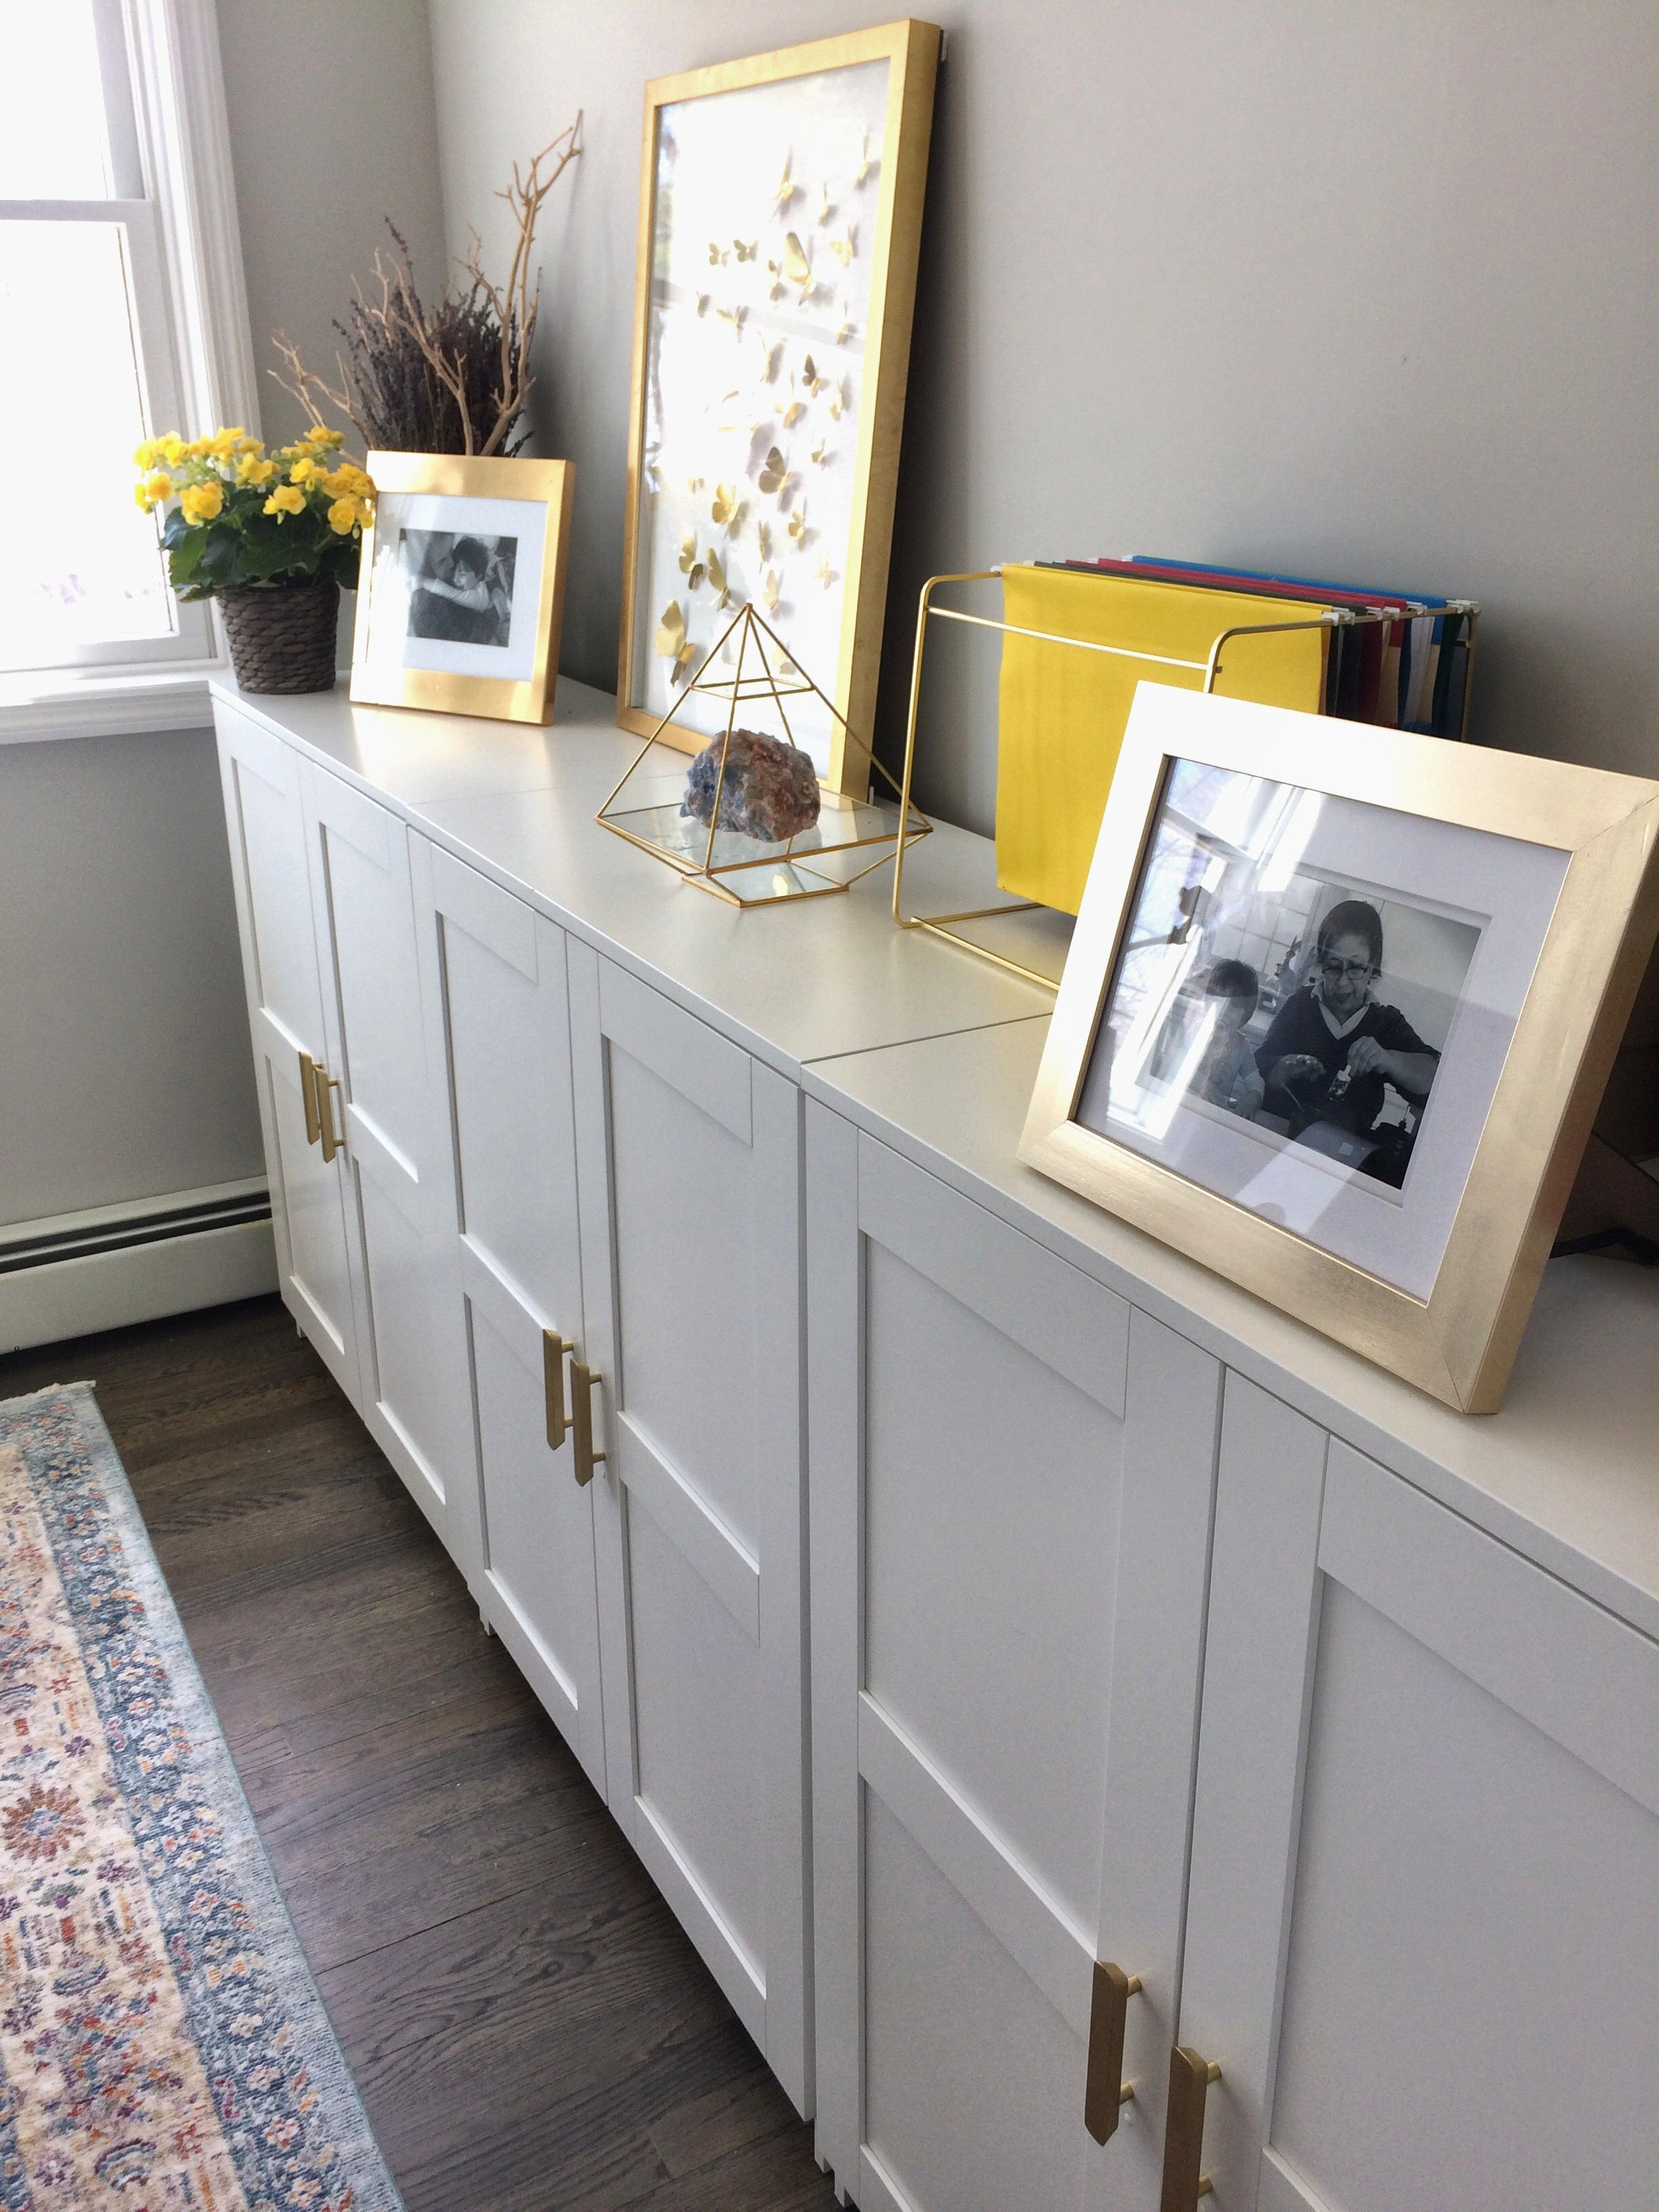 Storage Cabinets with Doors and Shelves Ikea Fresh Ikea Living Room Storage Cabinets with Doors Google Search